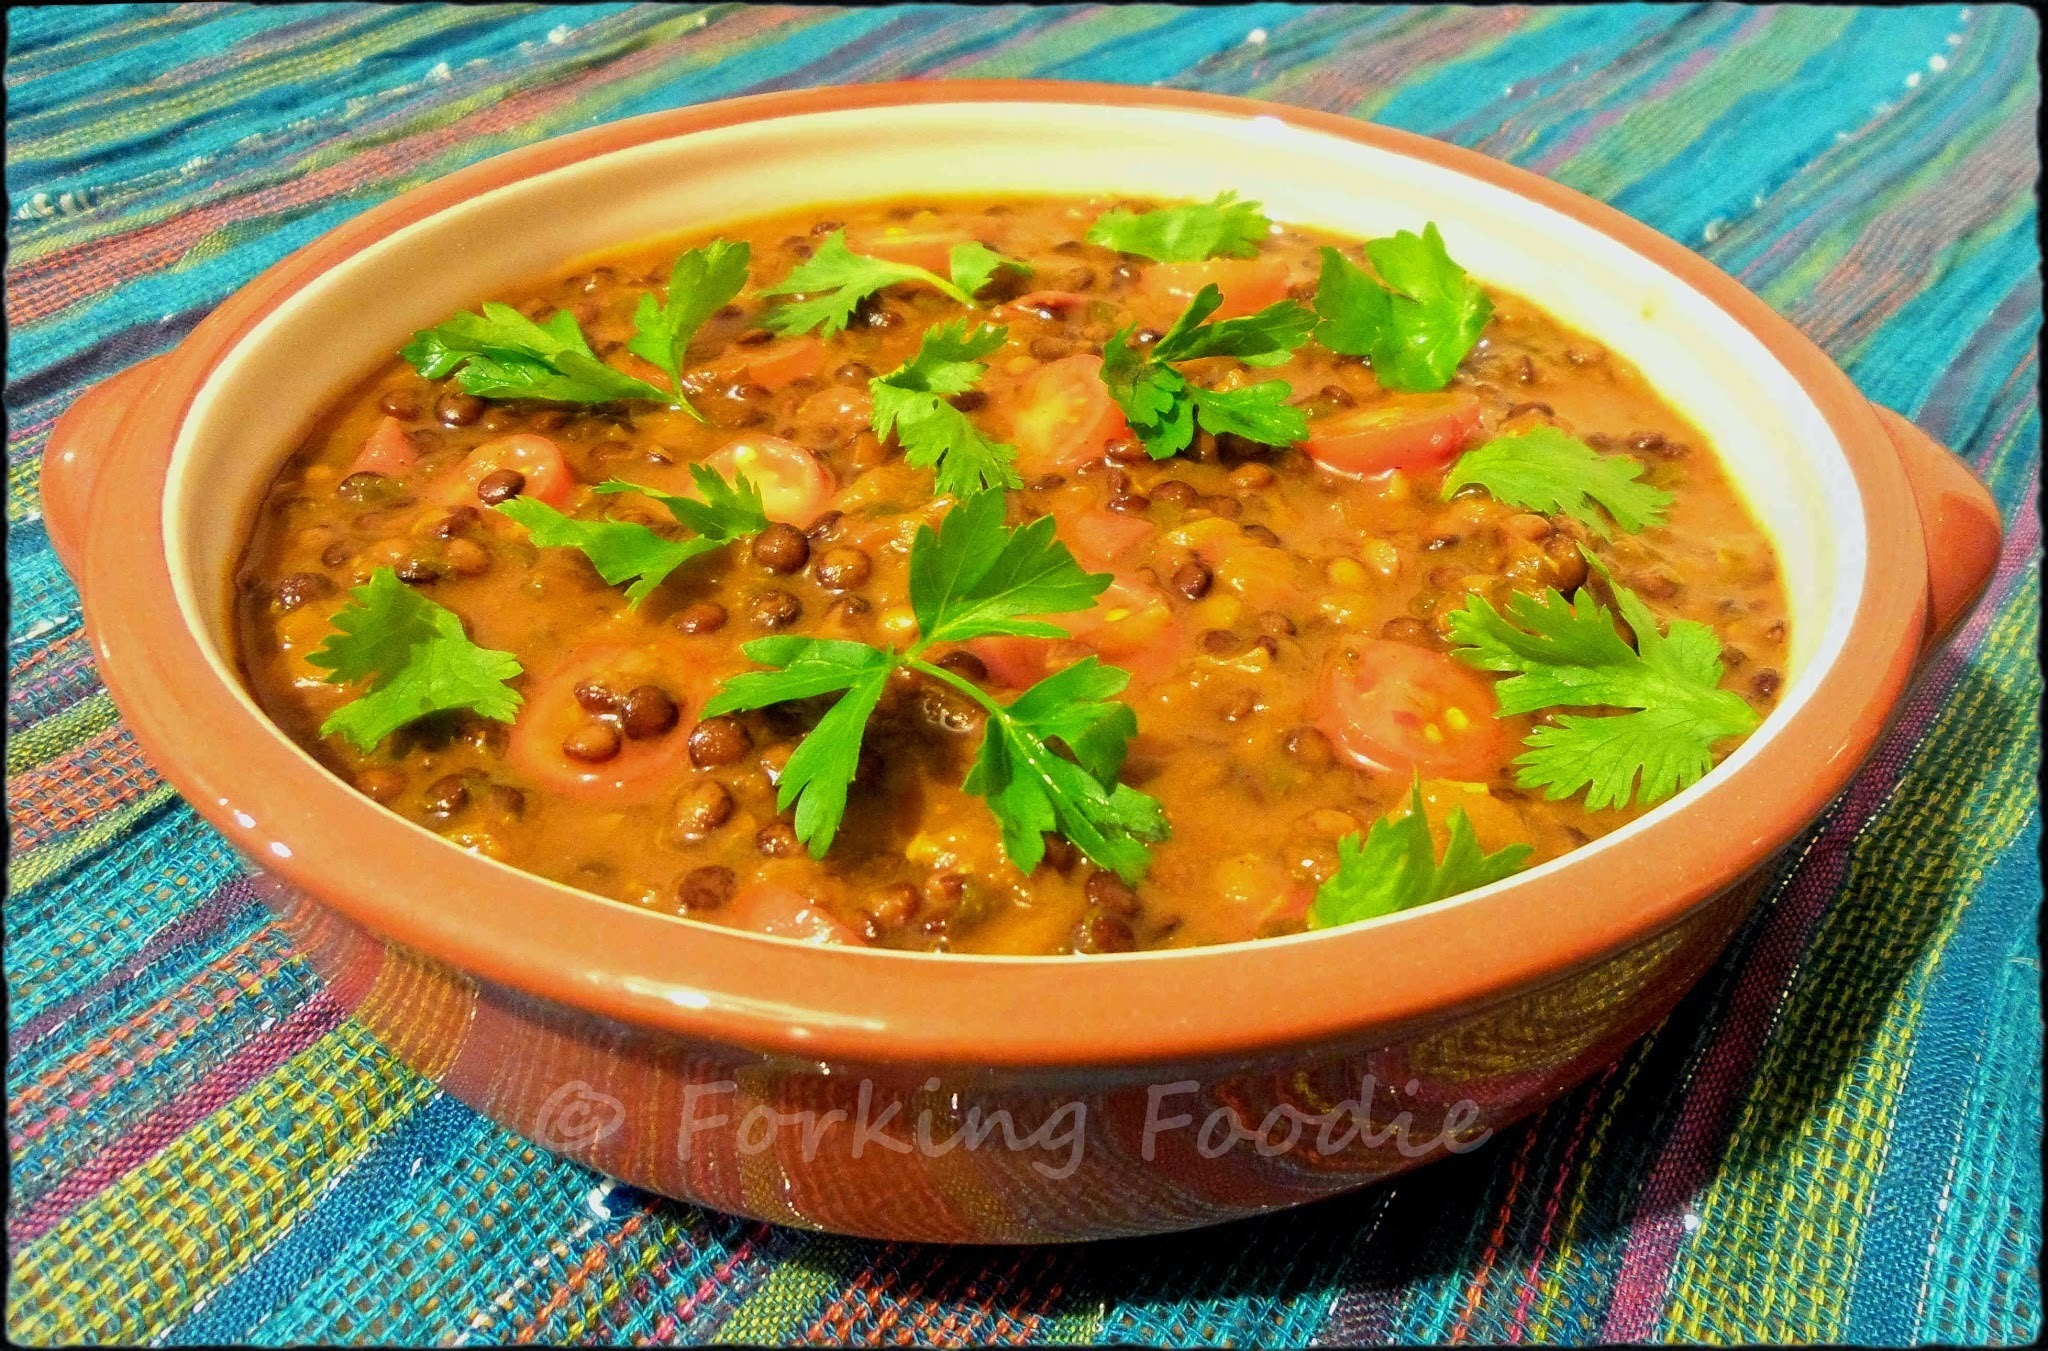 Spiced Puy Lentil and Tomato Stew